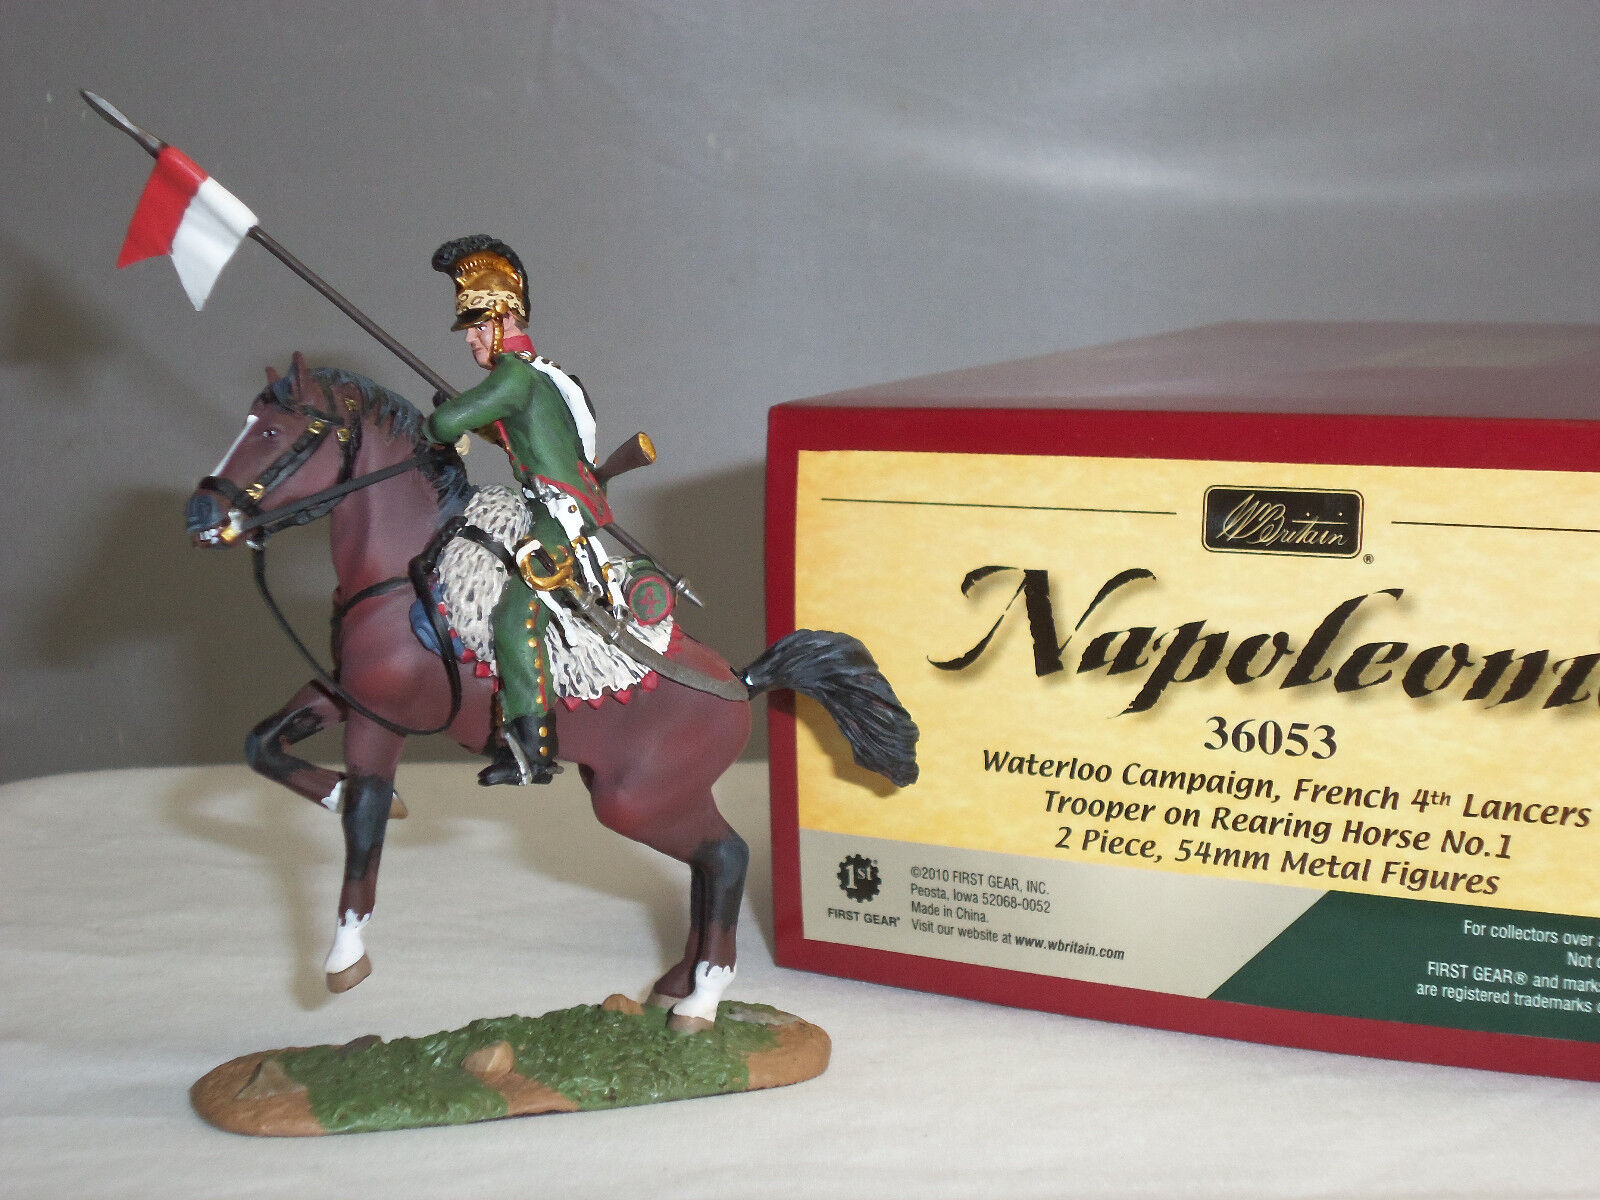 BRITAINS 36053 FRENCH 4TH LANCERS TROOPER MOUNTED ON REARING HORSE TOY SOLDIER